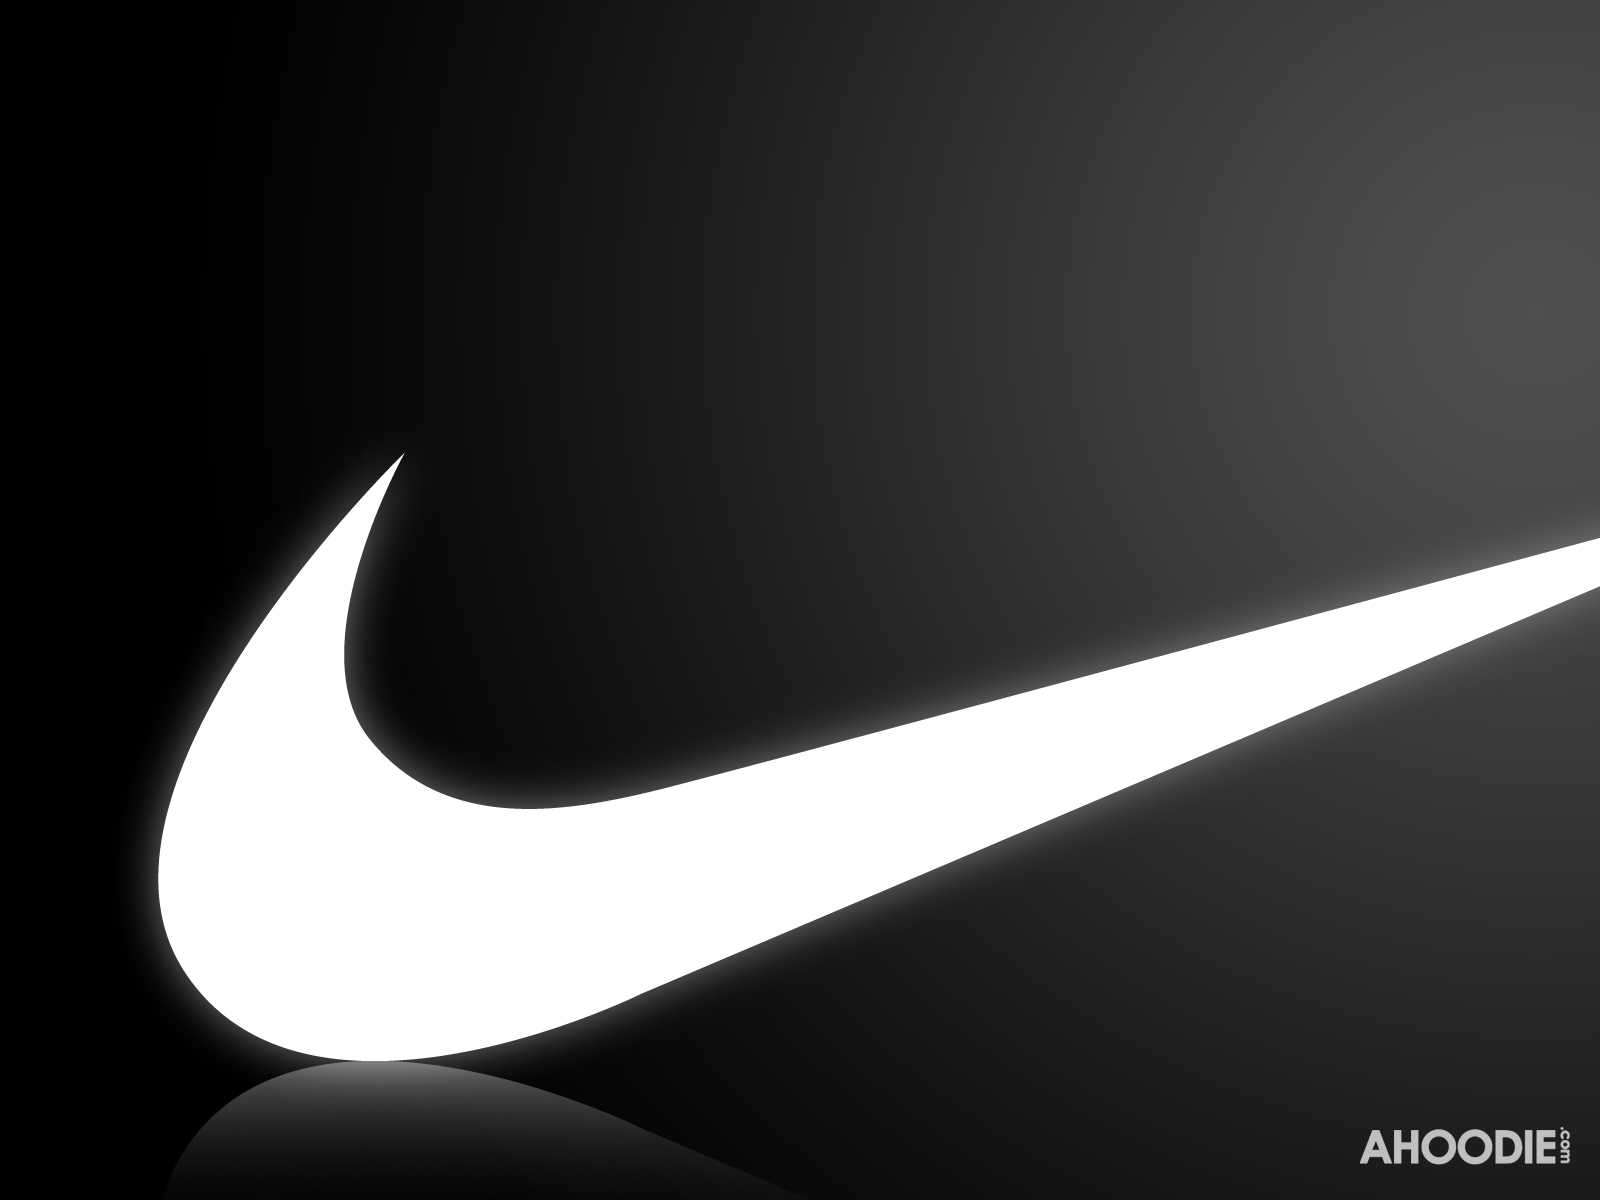 Black logo wallpaper nike swoosh black logo wallpaper voltagebd Images